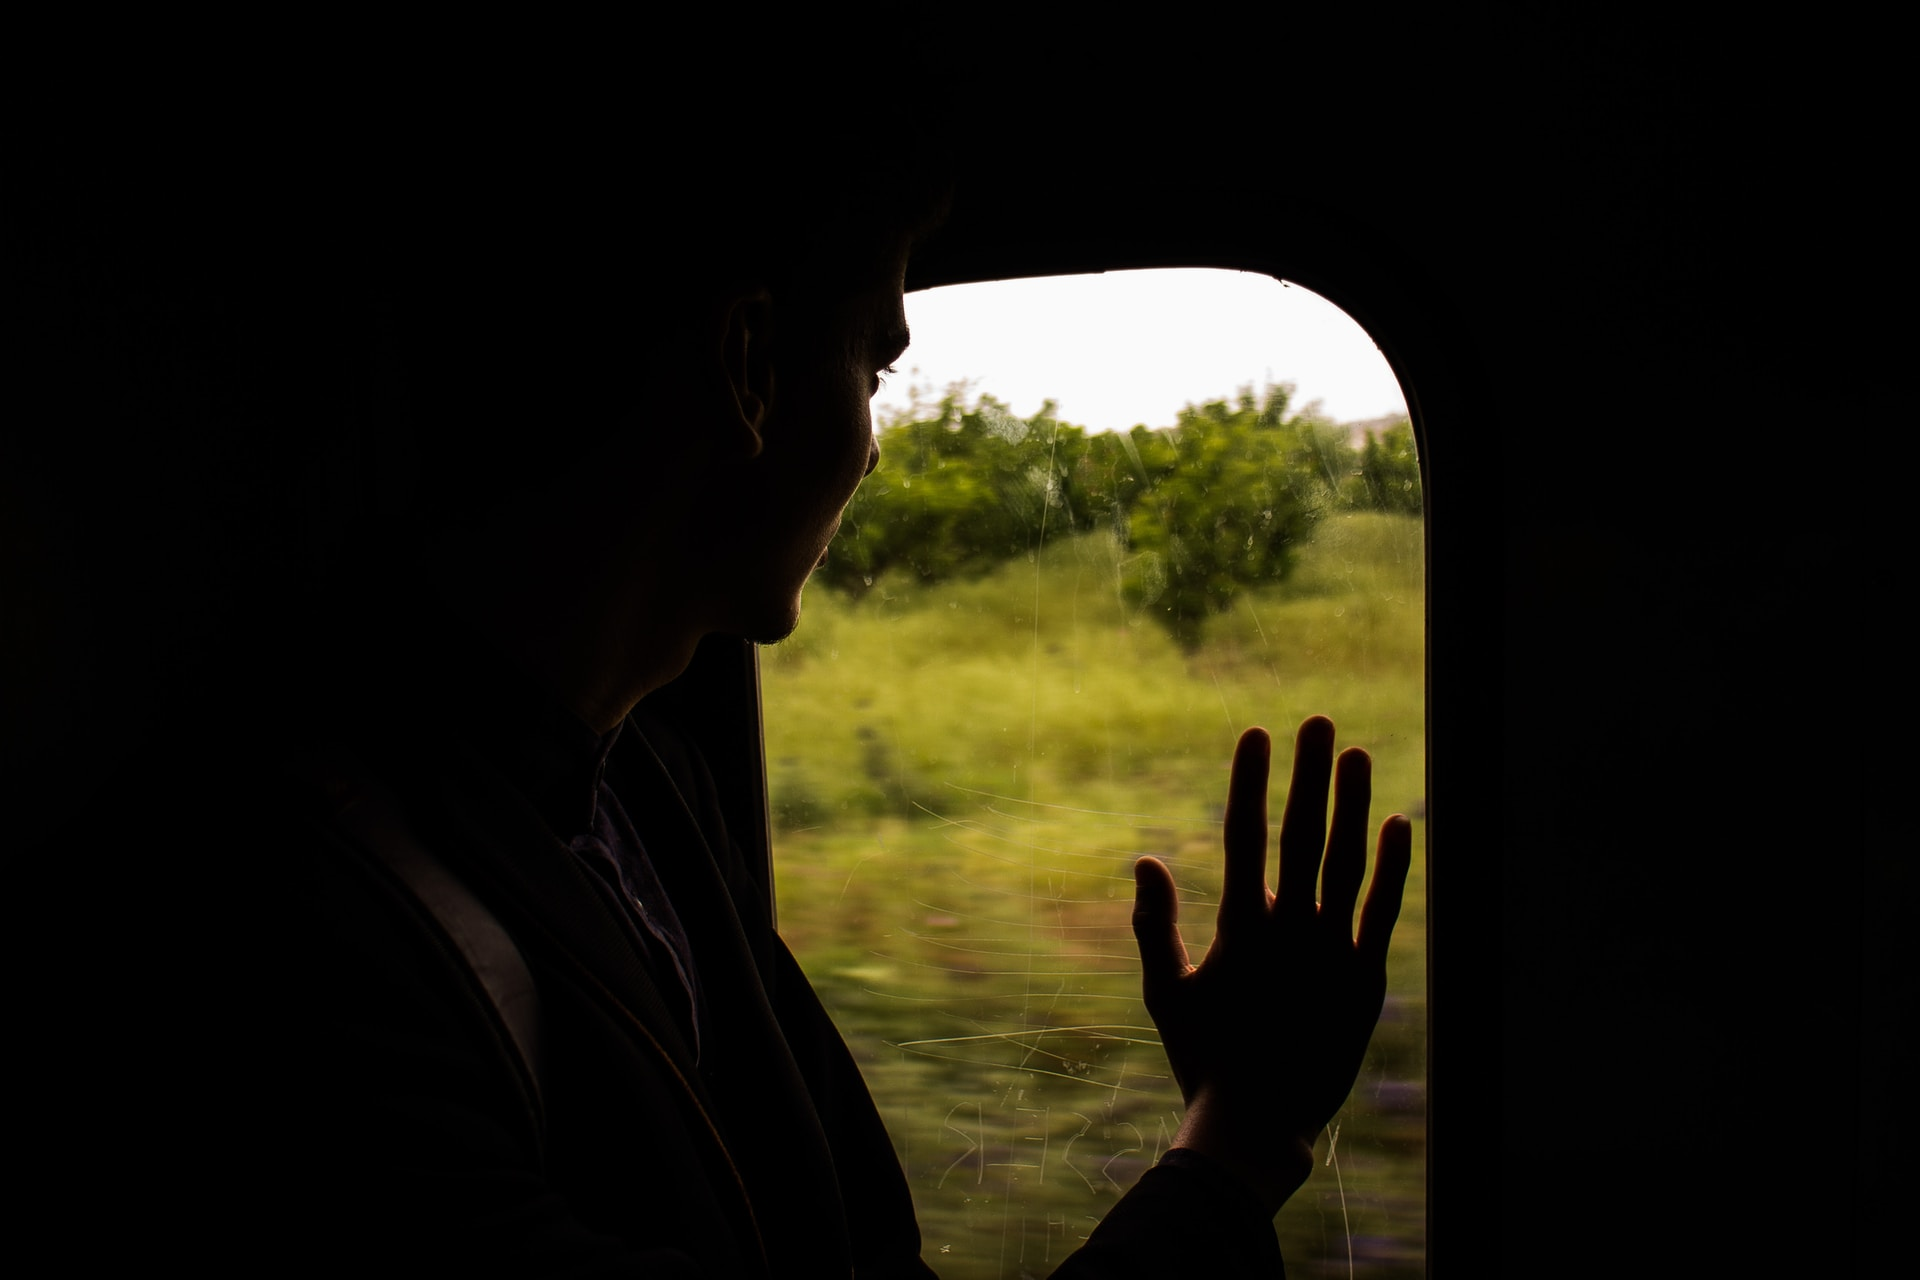 silhouette of person looking on window